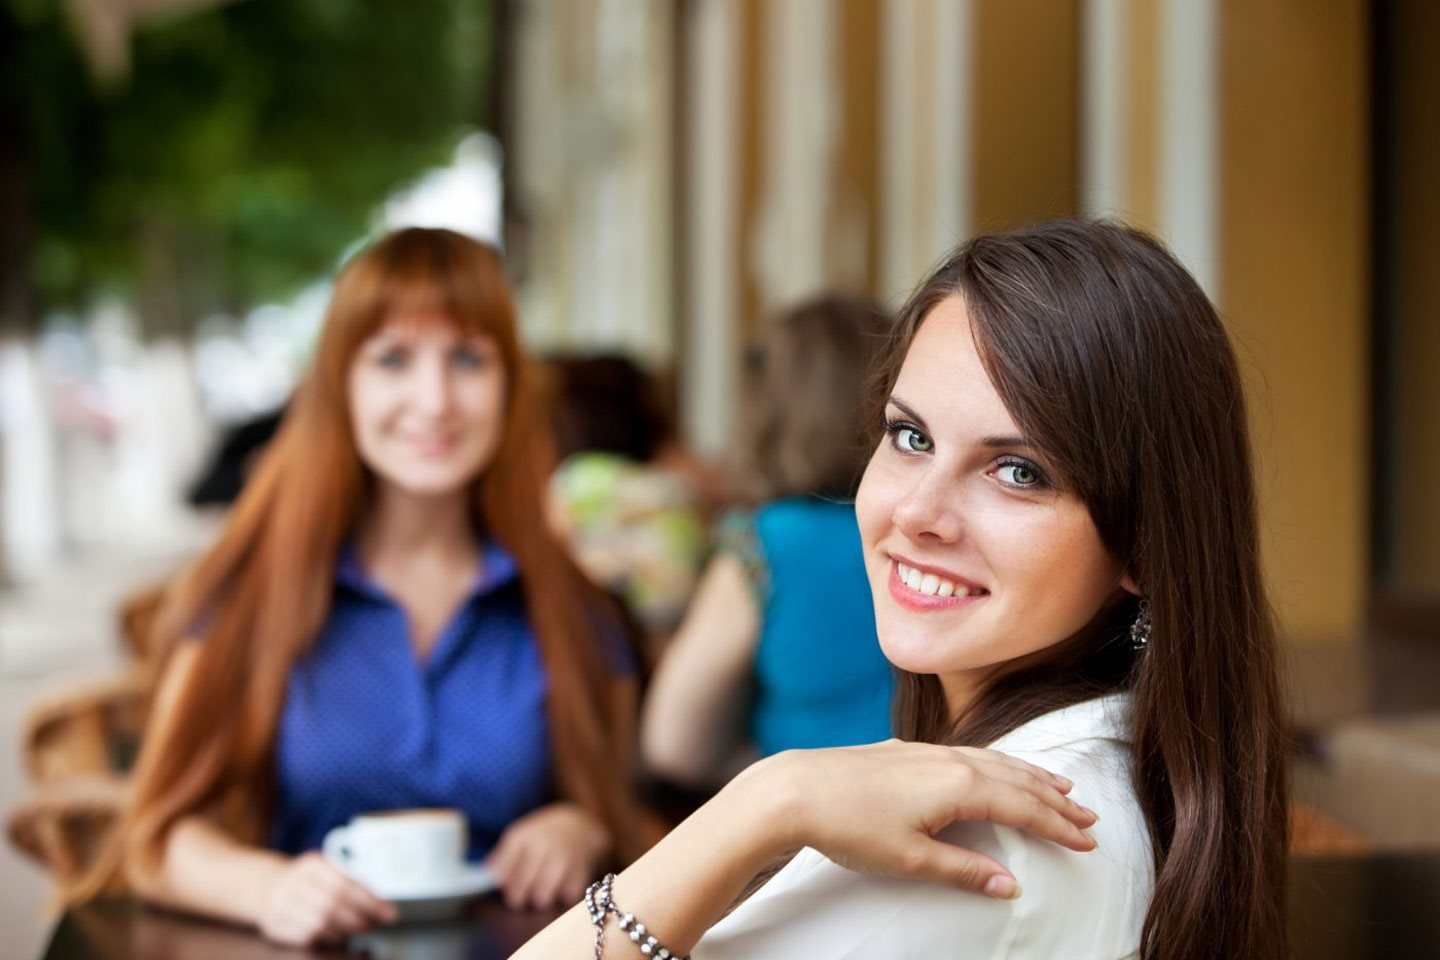 Two girls at outside cafe Vista Ca Apartments For Rent l Taylor Brooke